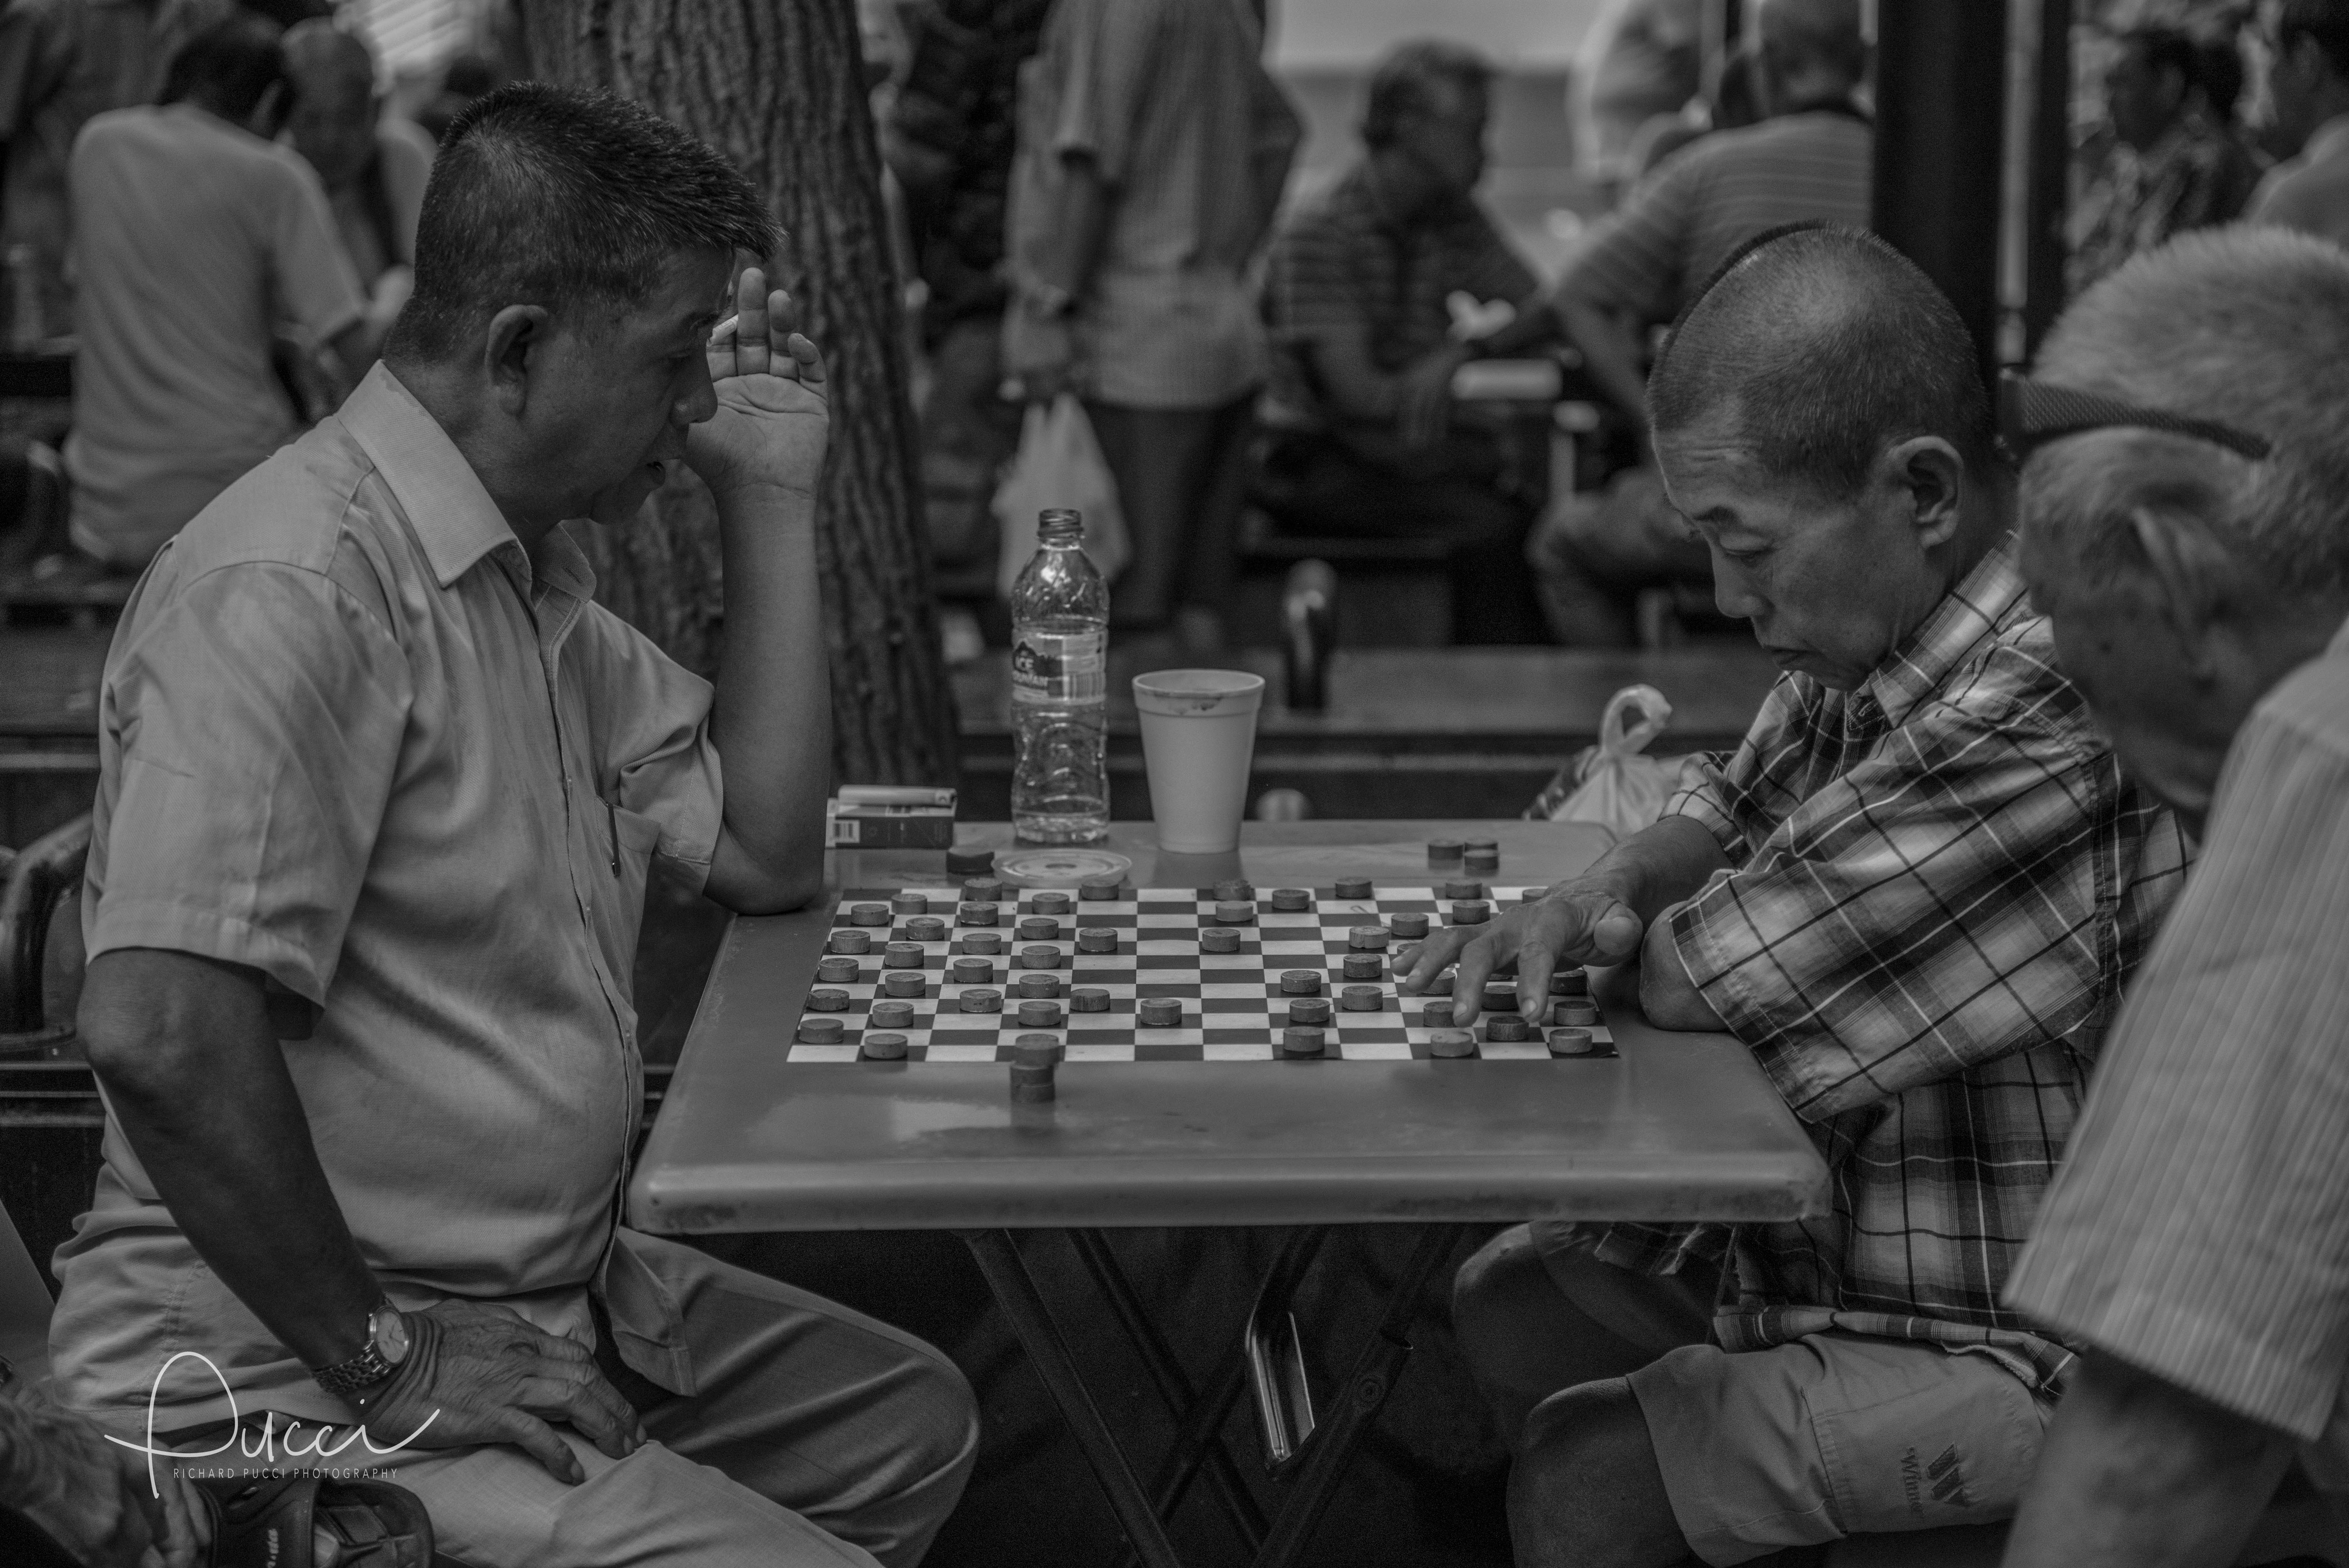 Checkers in China Town - Singapore